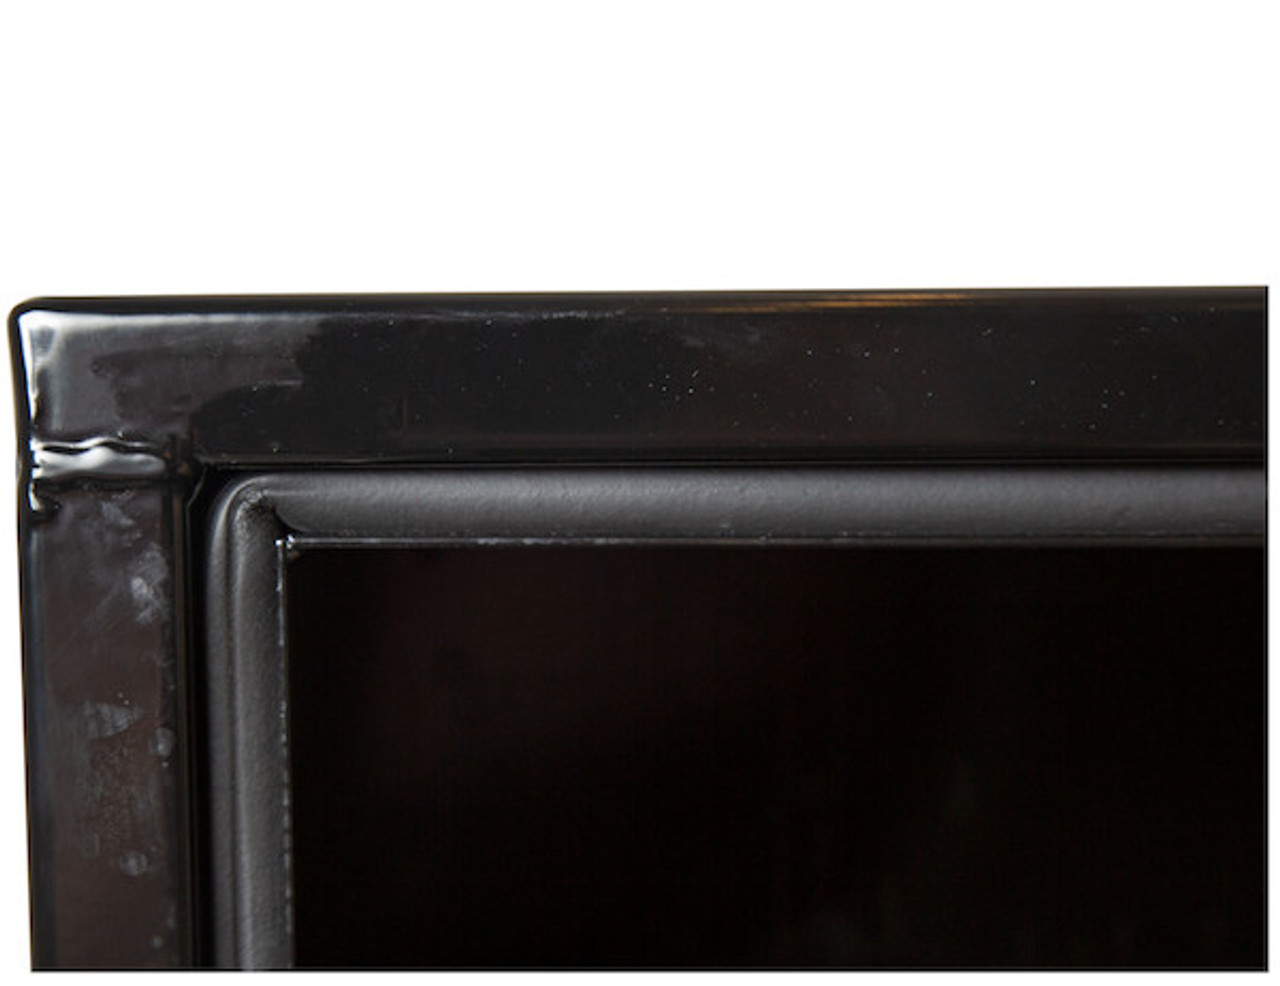 """1702105 BUYERS PRODUCTS BLACK STEEL UNDERBODY TRUCK TOOLBOX WITH PADDLE LATCH TOOLBOX 18""""HX18""""DX36""""W"""